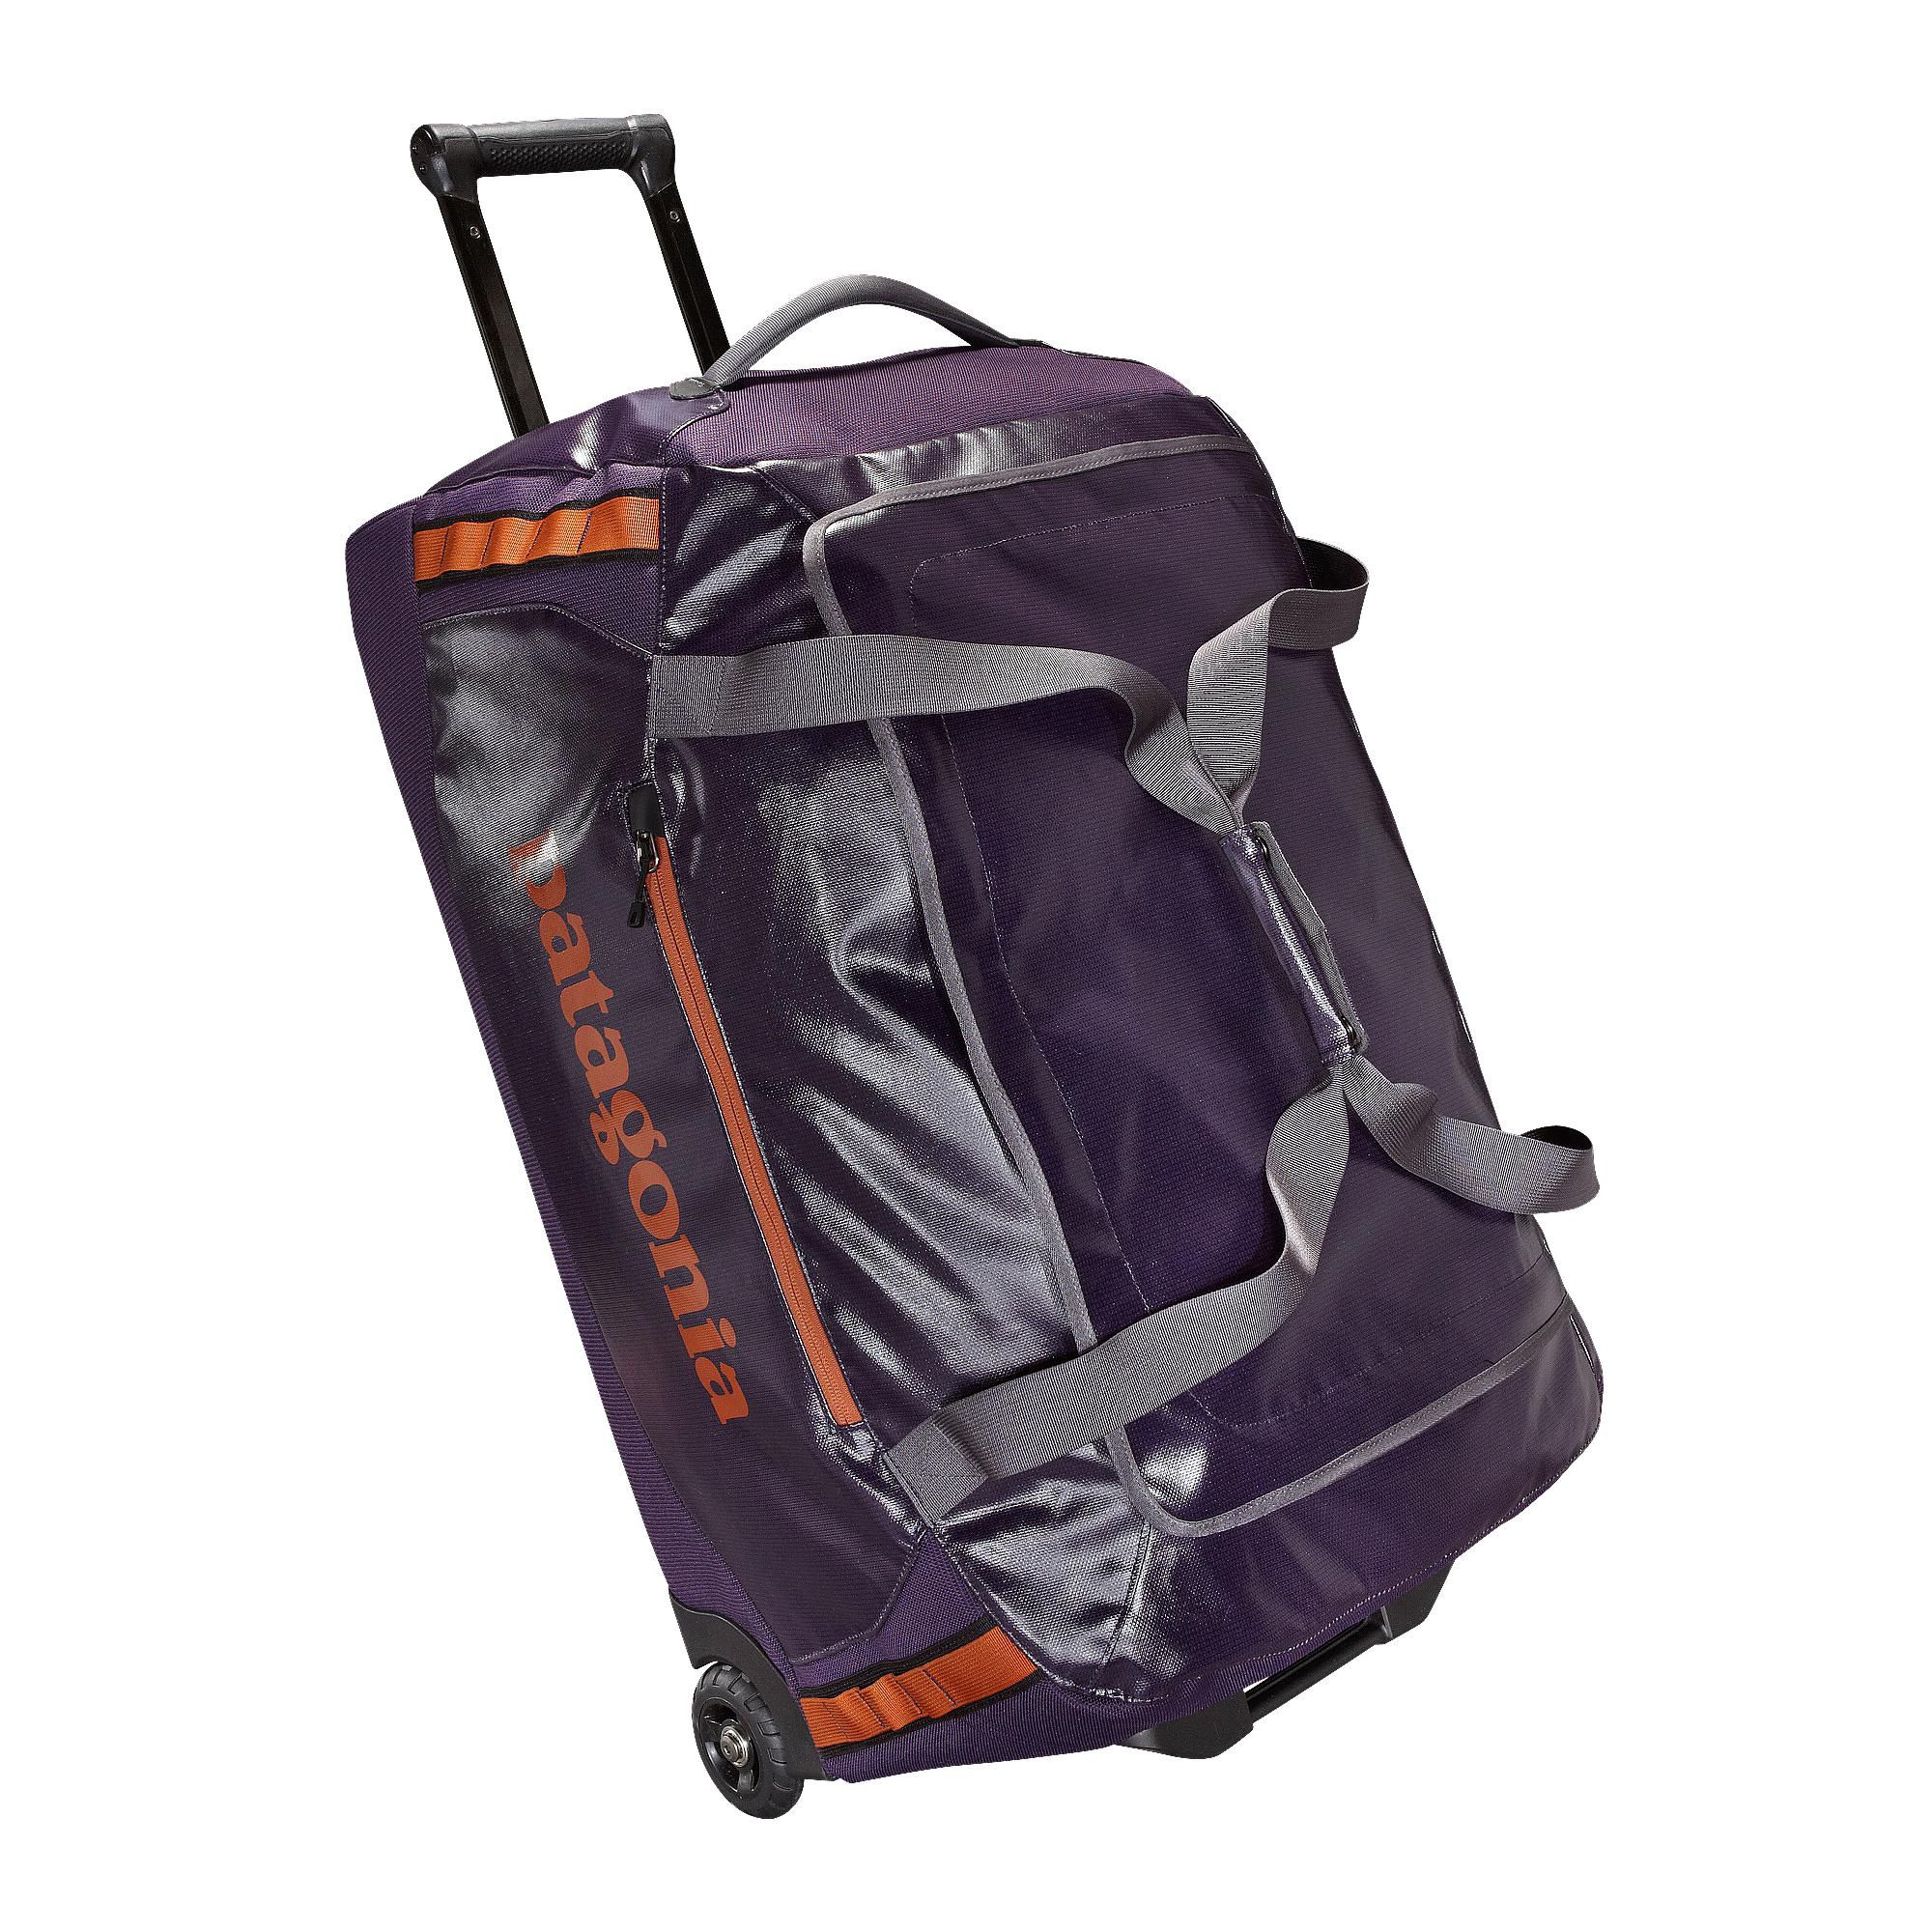 c249eed9f162 Patagonia Black Hole Wheeled Duffel 100L - A highly water-resistant ...